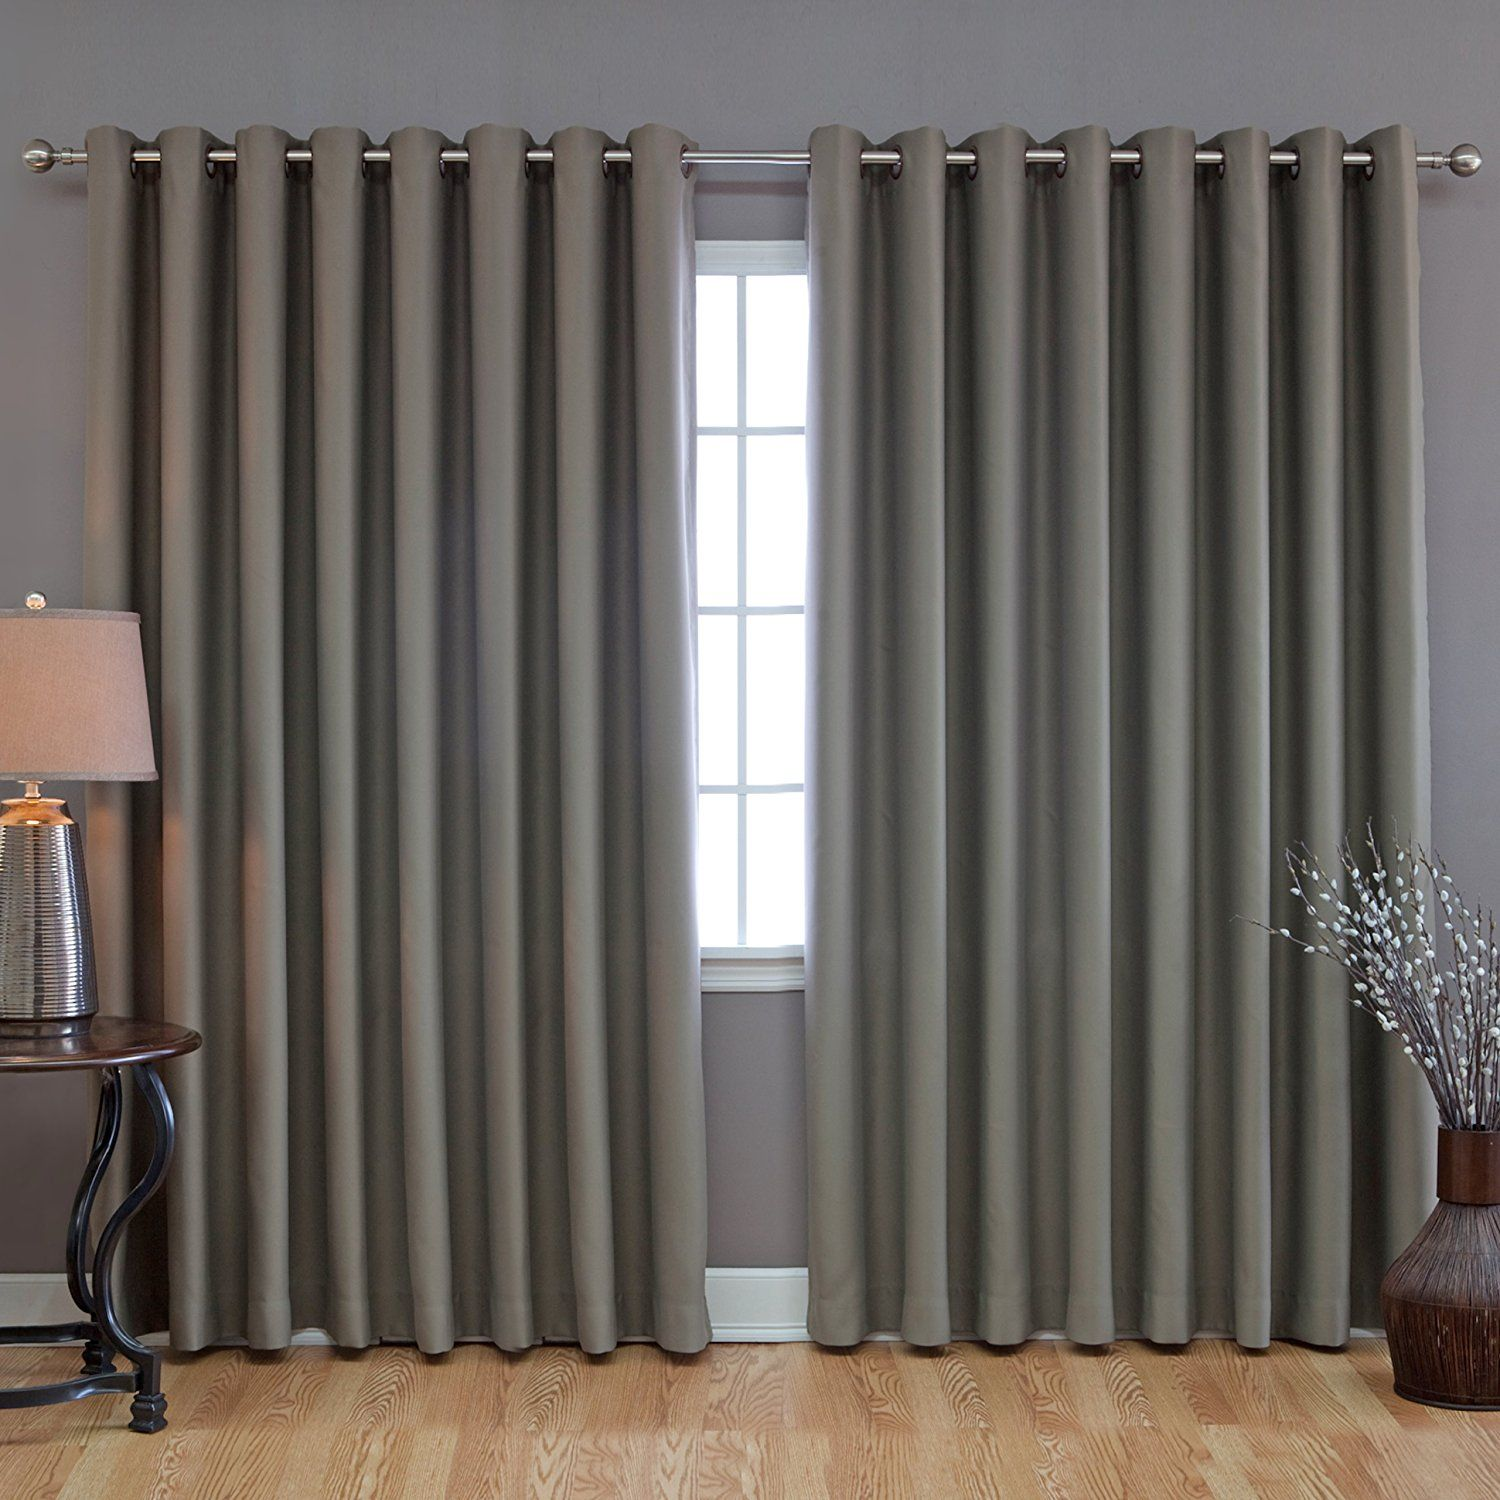 Thermal Patio Door Curtains With Grommets Blackout Thermal Curtains Sale Ease Bedding With Style Patio